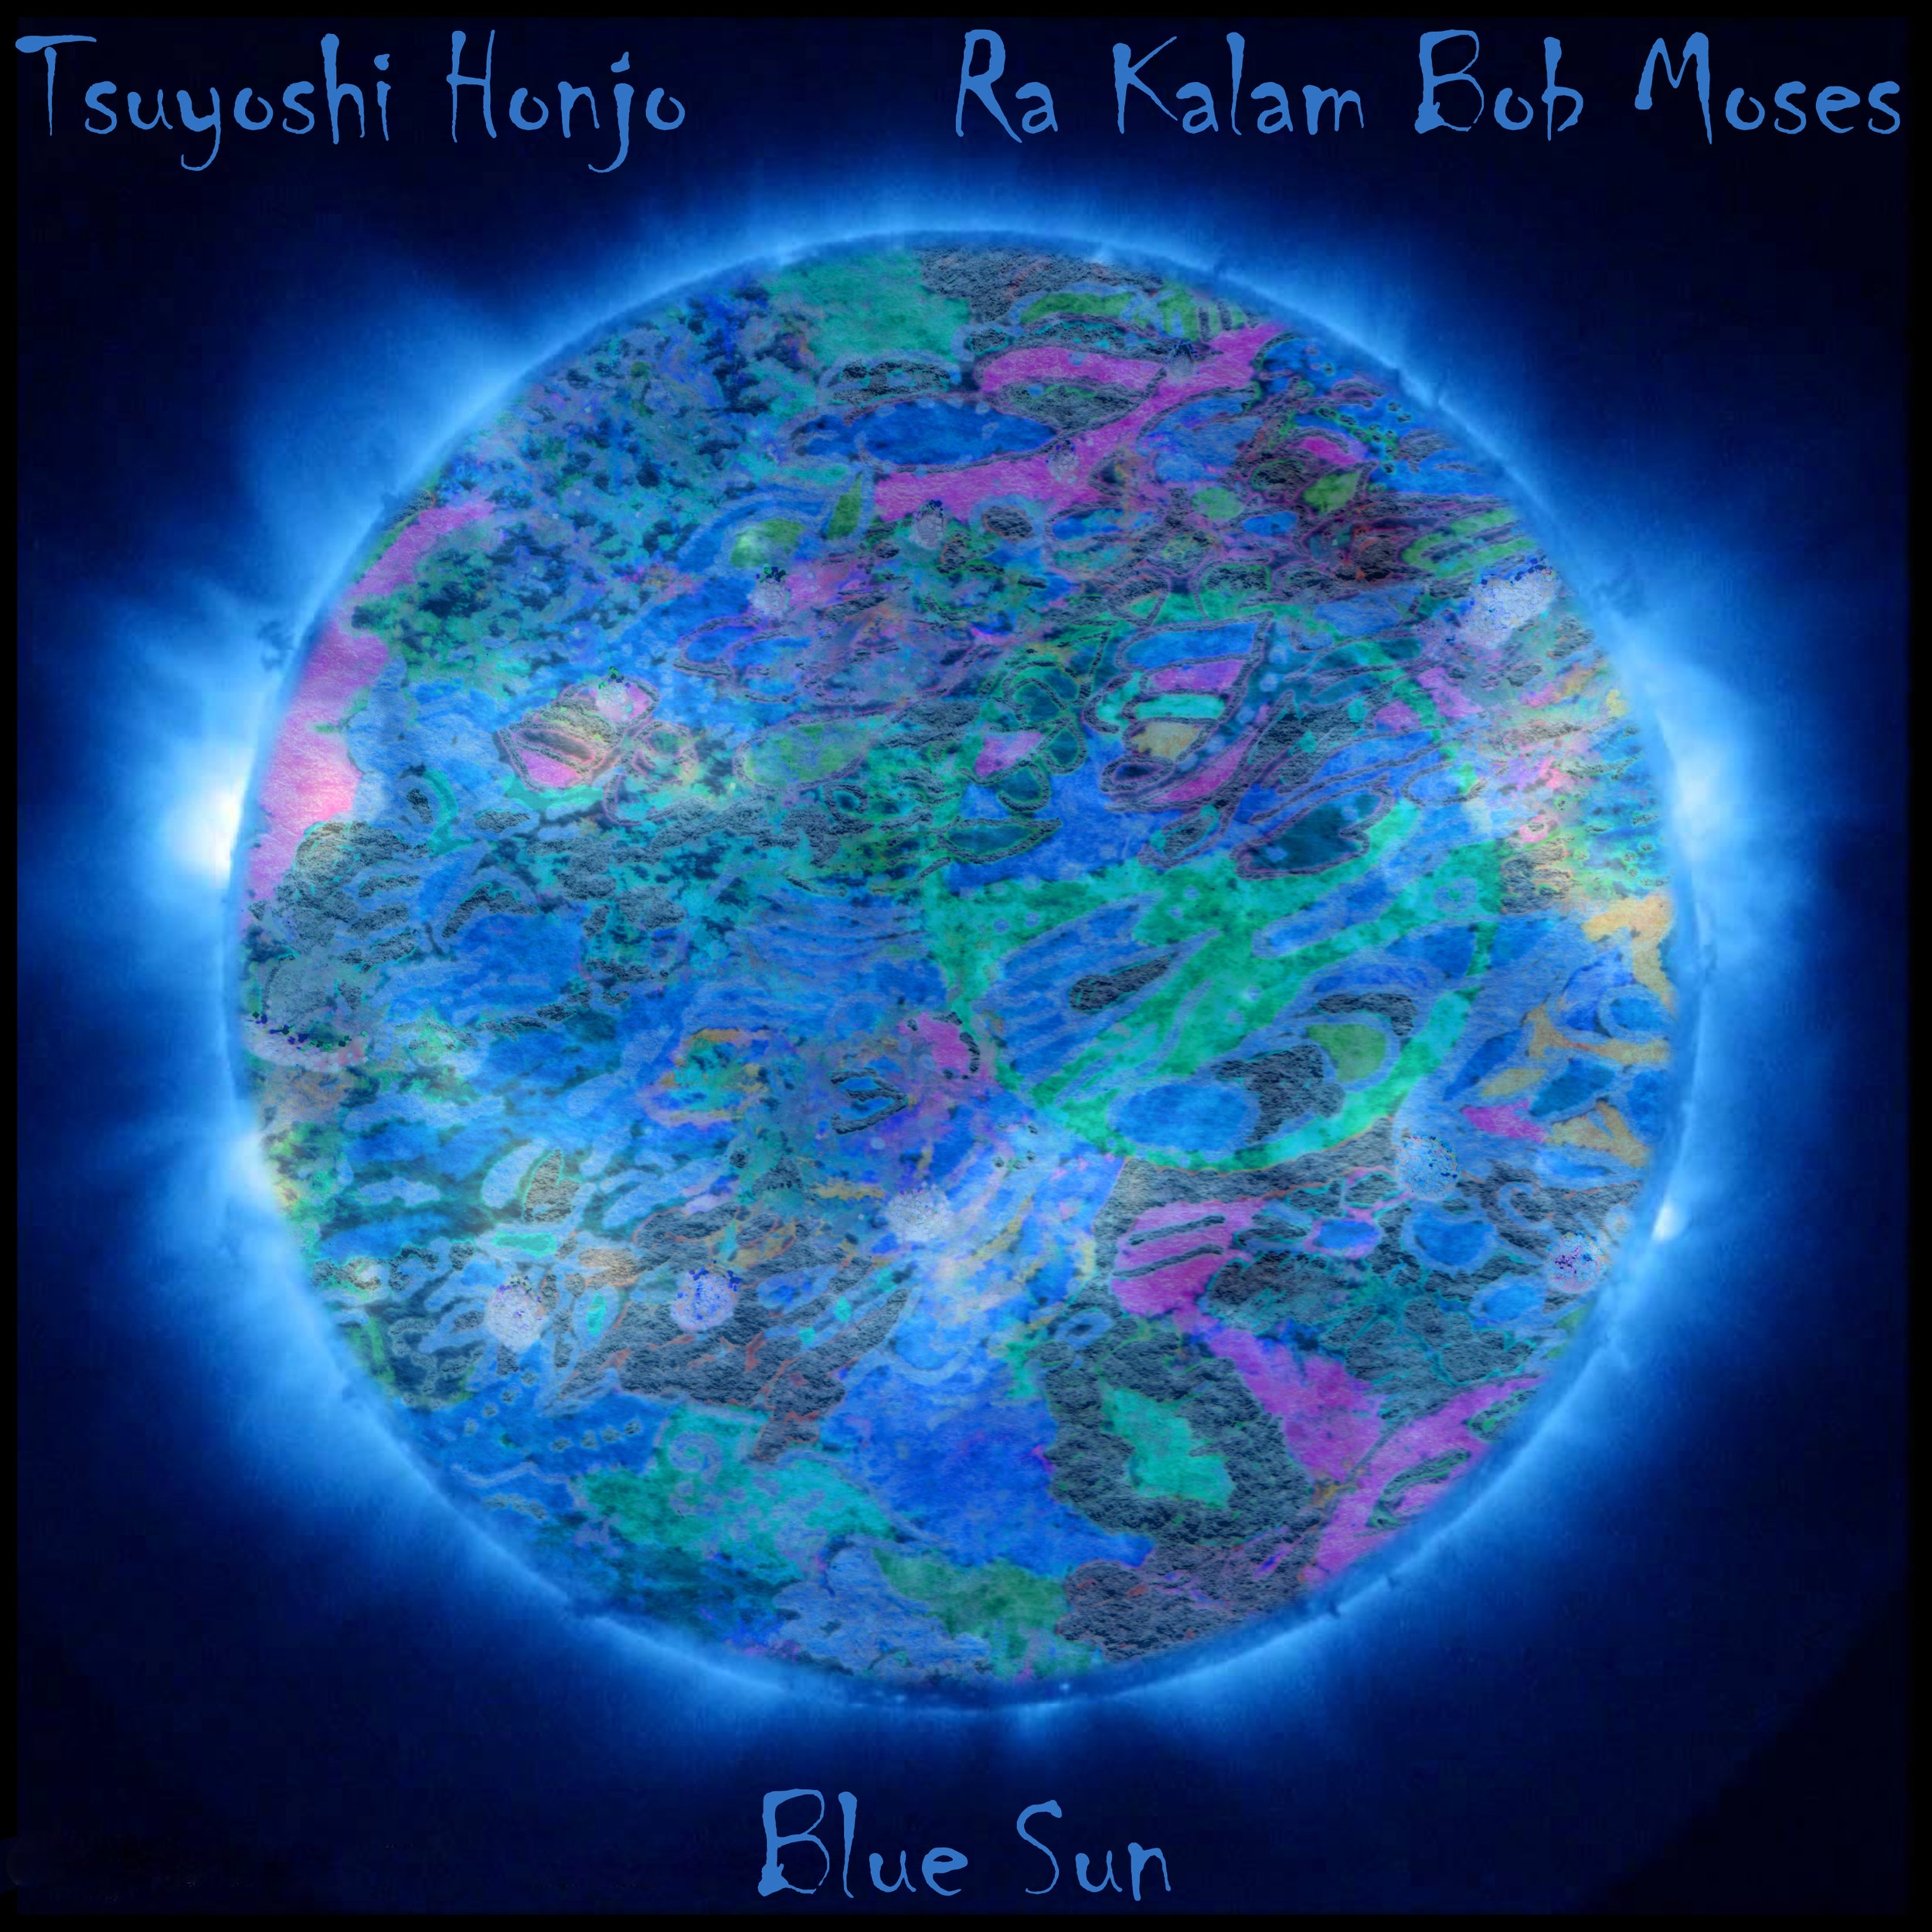 BLUE SUN    Compact Disc -    E-mail your order     Digital -    Amazon    -    iTunes     Tsuyoshi Honjo - Tenor and soprano saxophones    Ra Kalam Bob Moses - Drums, bass, talking drums, monkey drums, dumbek, voice, gongs, kalimba, djembe, spring drum and hapi drum     SAMPLE